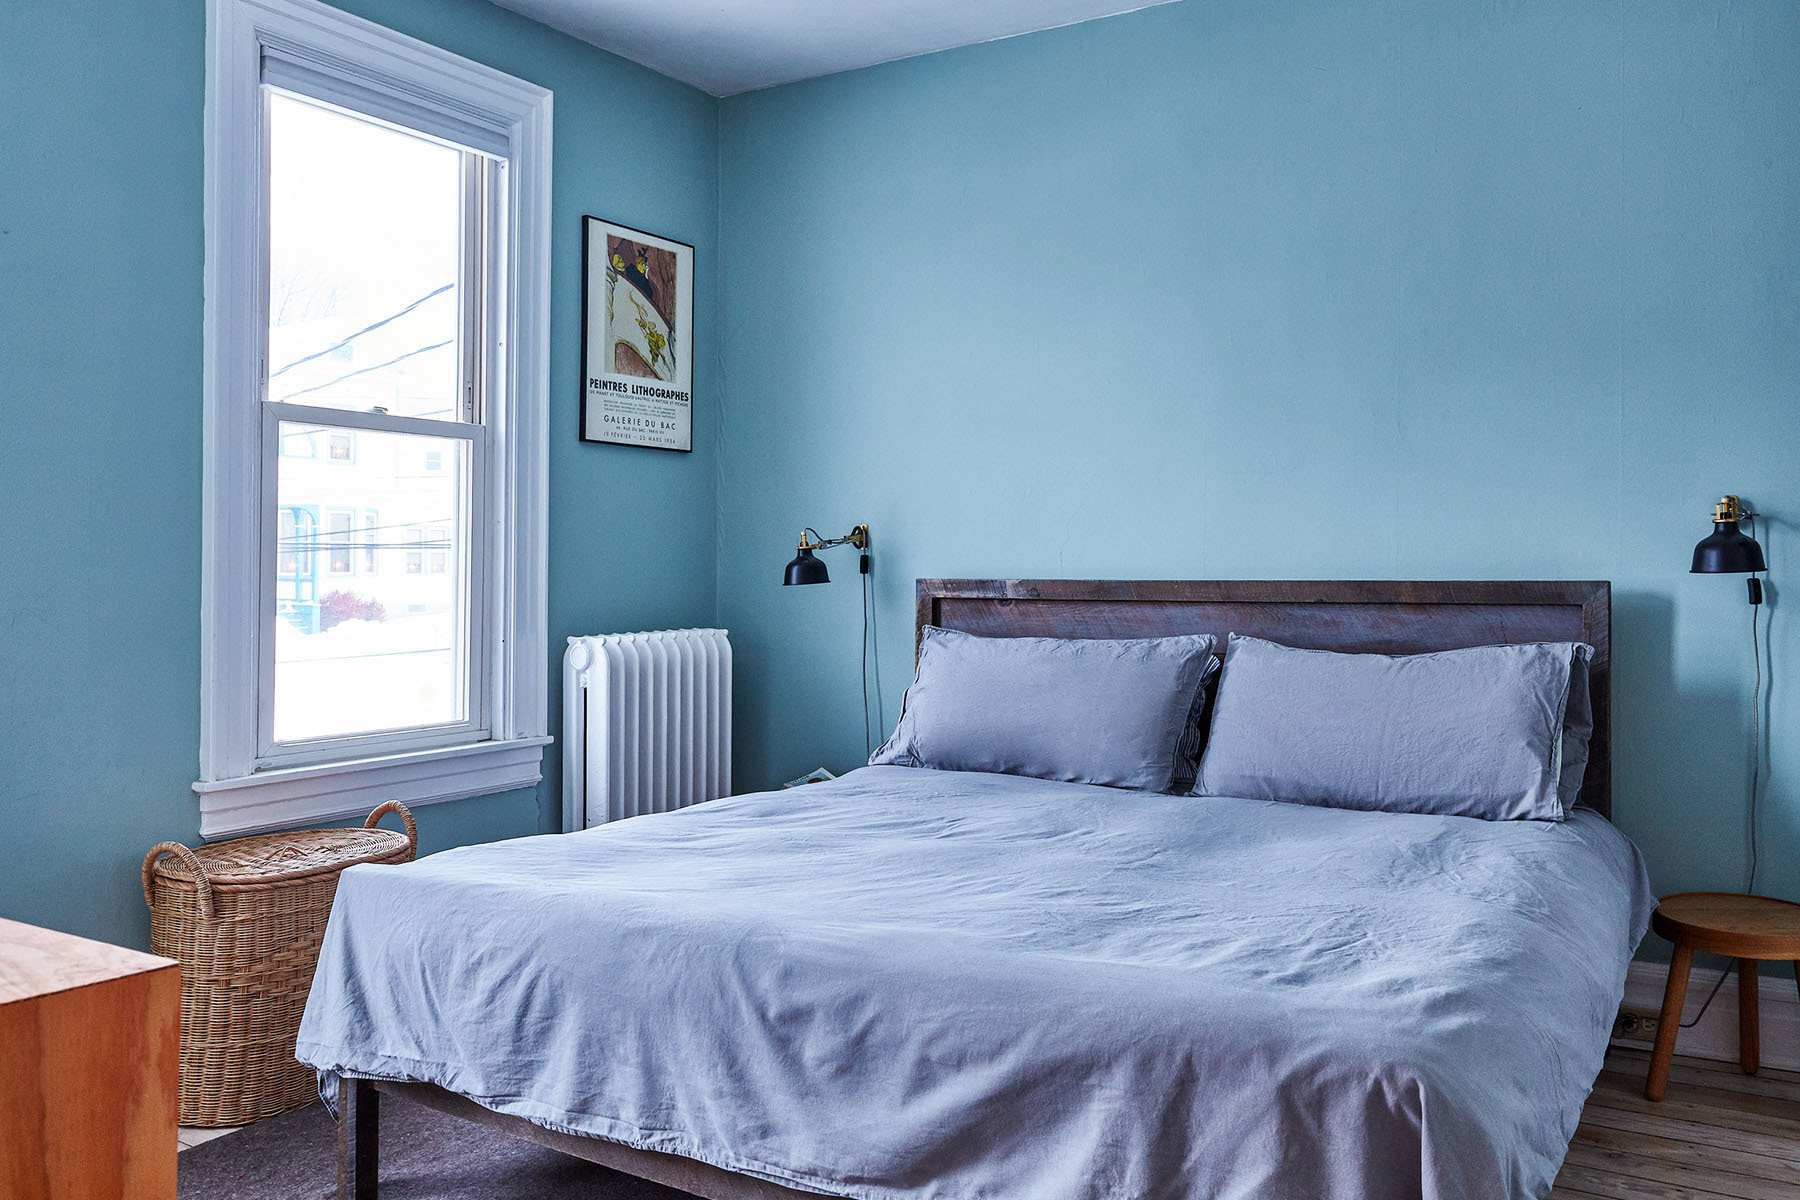 Blue walls and dove blue linen drive the Scandinavian aesthetic in the couple's guest bedroom. Benjamin Moore Paint | Chad Silver Design Bed | IKEA Sconce Lights | IKEA Bed Linen | IKEA Customized Dresser | Vintage Artwork | Vintage Rug | Chad Silver Design Stool.